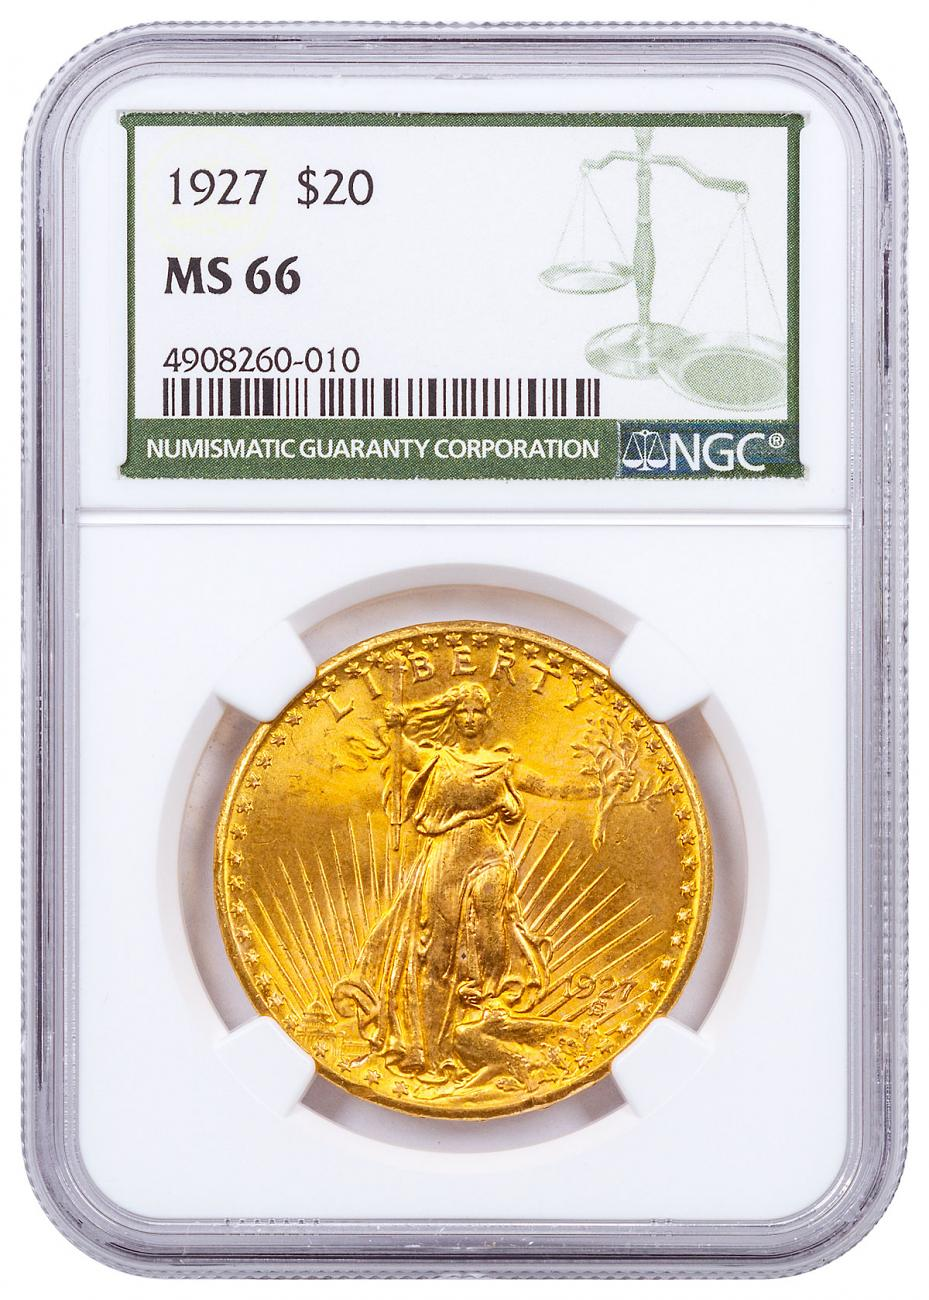 1927 Saint-Gaudens $20 Gold Double Eagle NGC MS66 Green Label